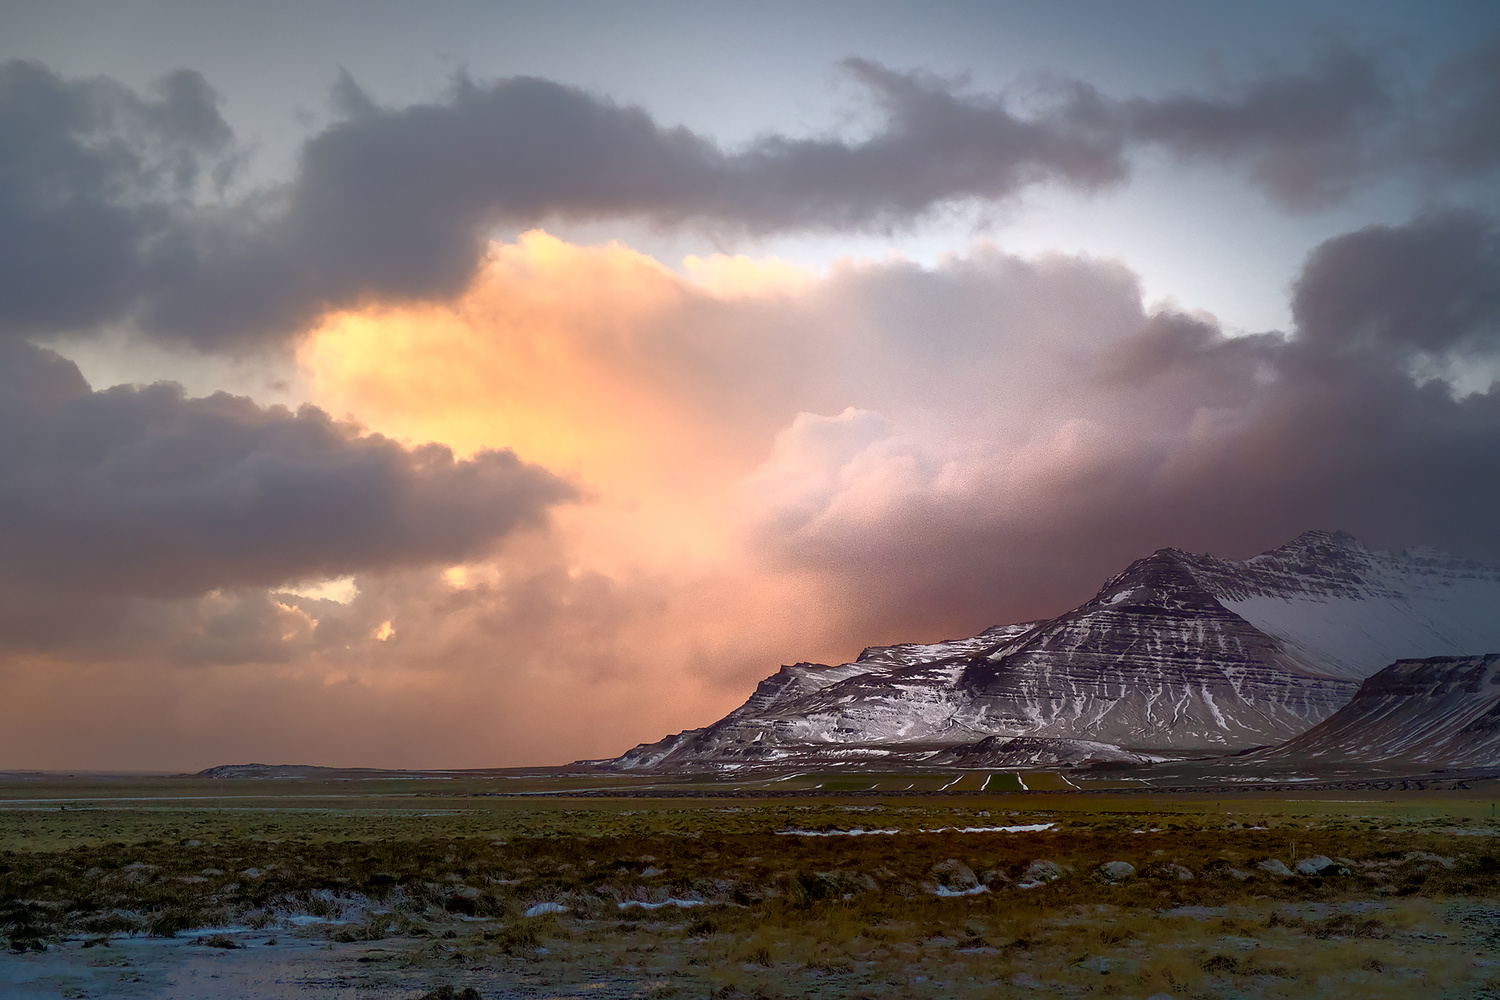 """There's a saying in Iceland that goes """"If you don't like the weather, wait 5 minutes"""" by Maria Sahai"""